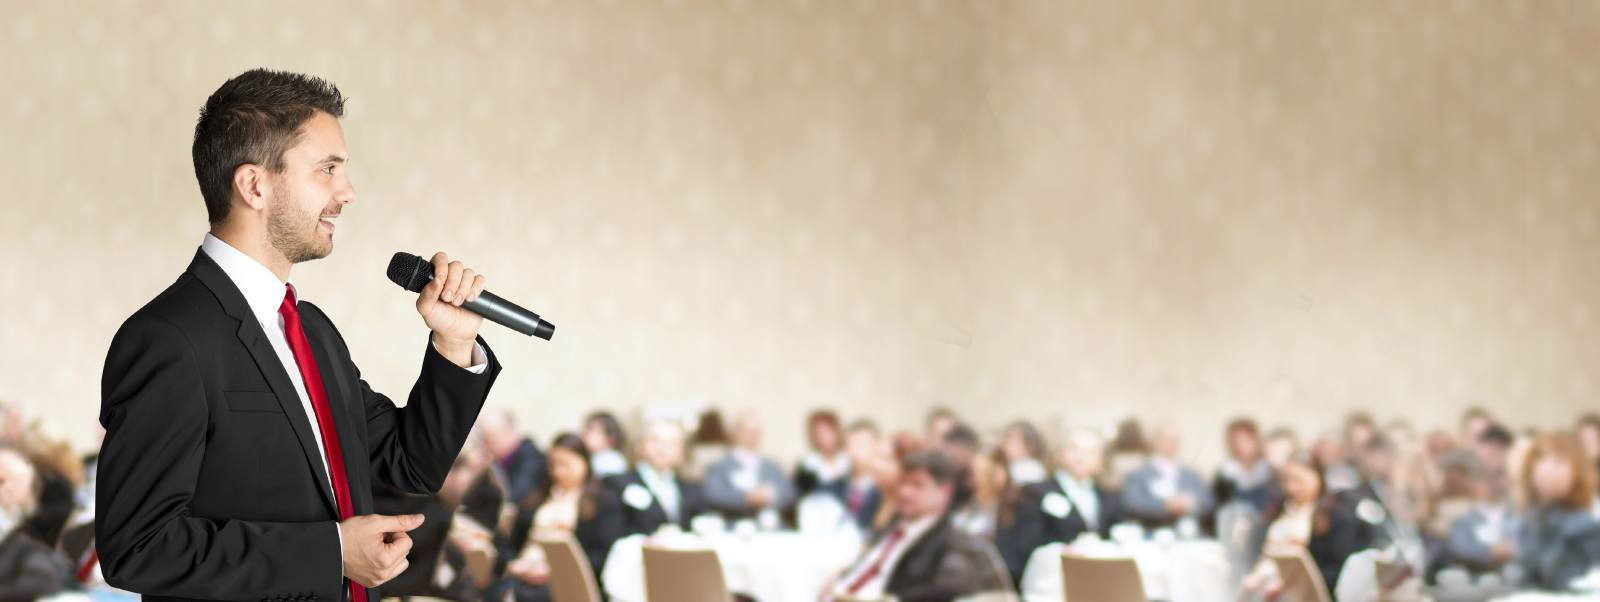 Public-Speaking-Web-Banner